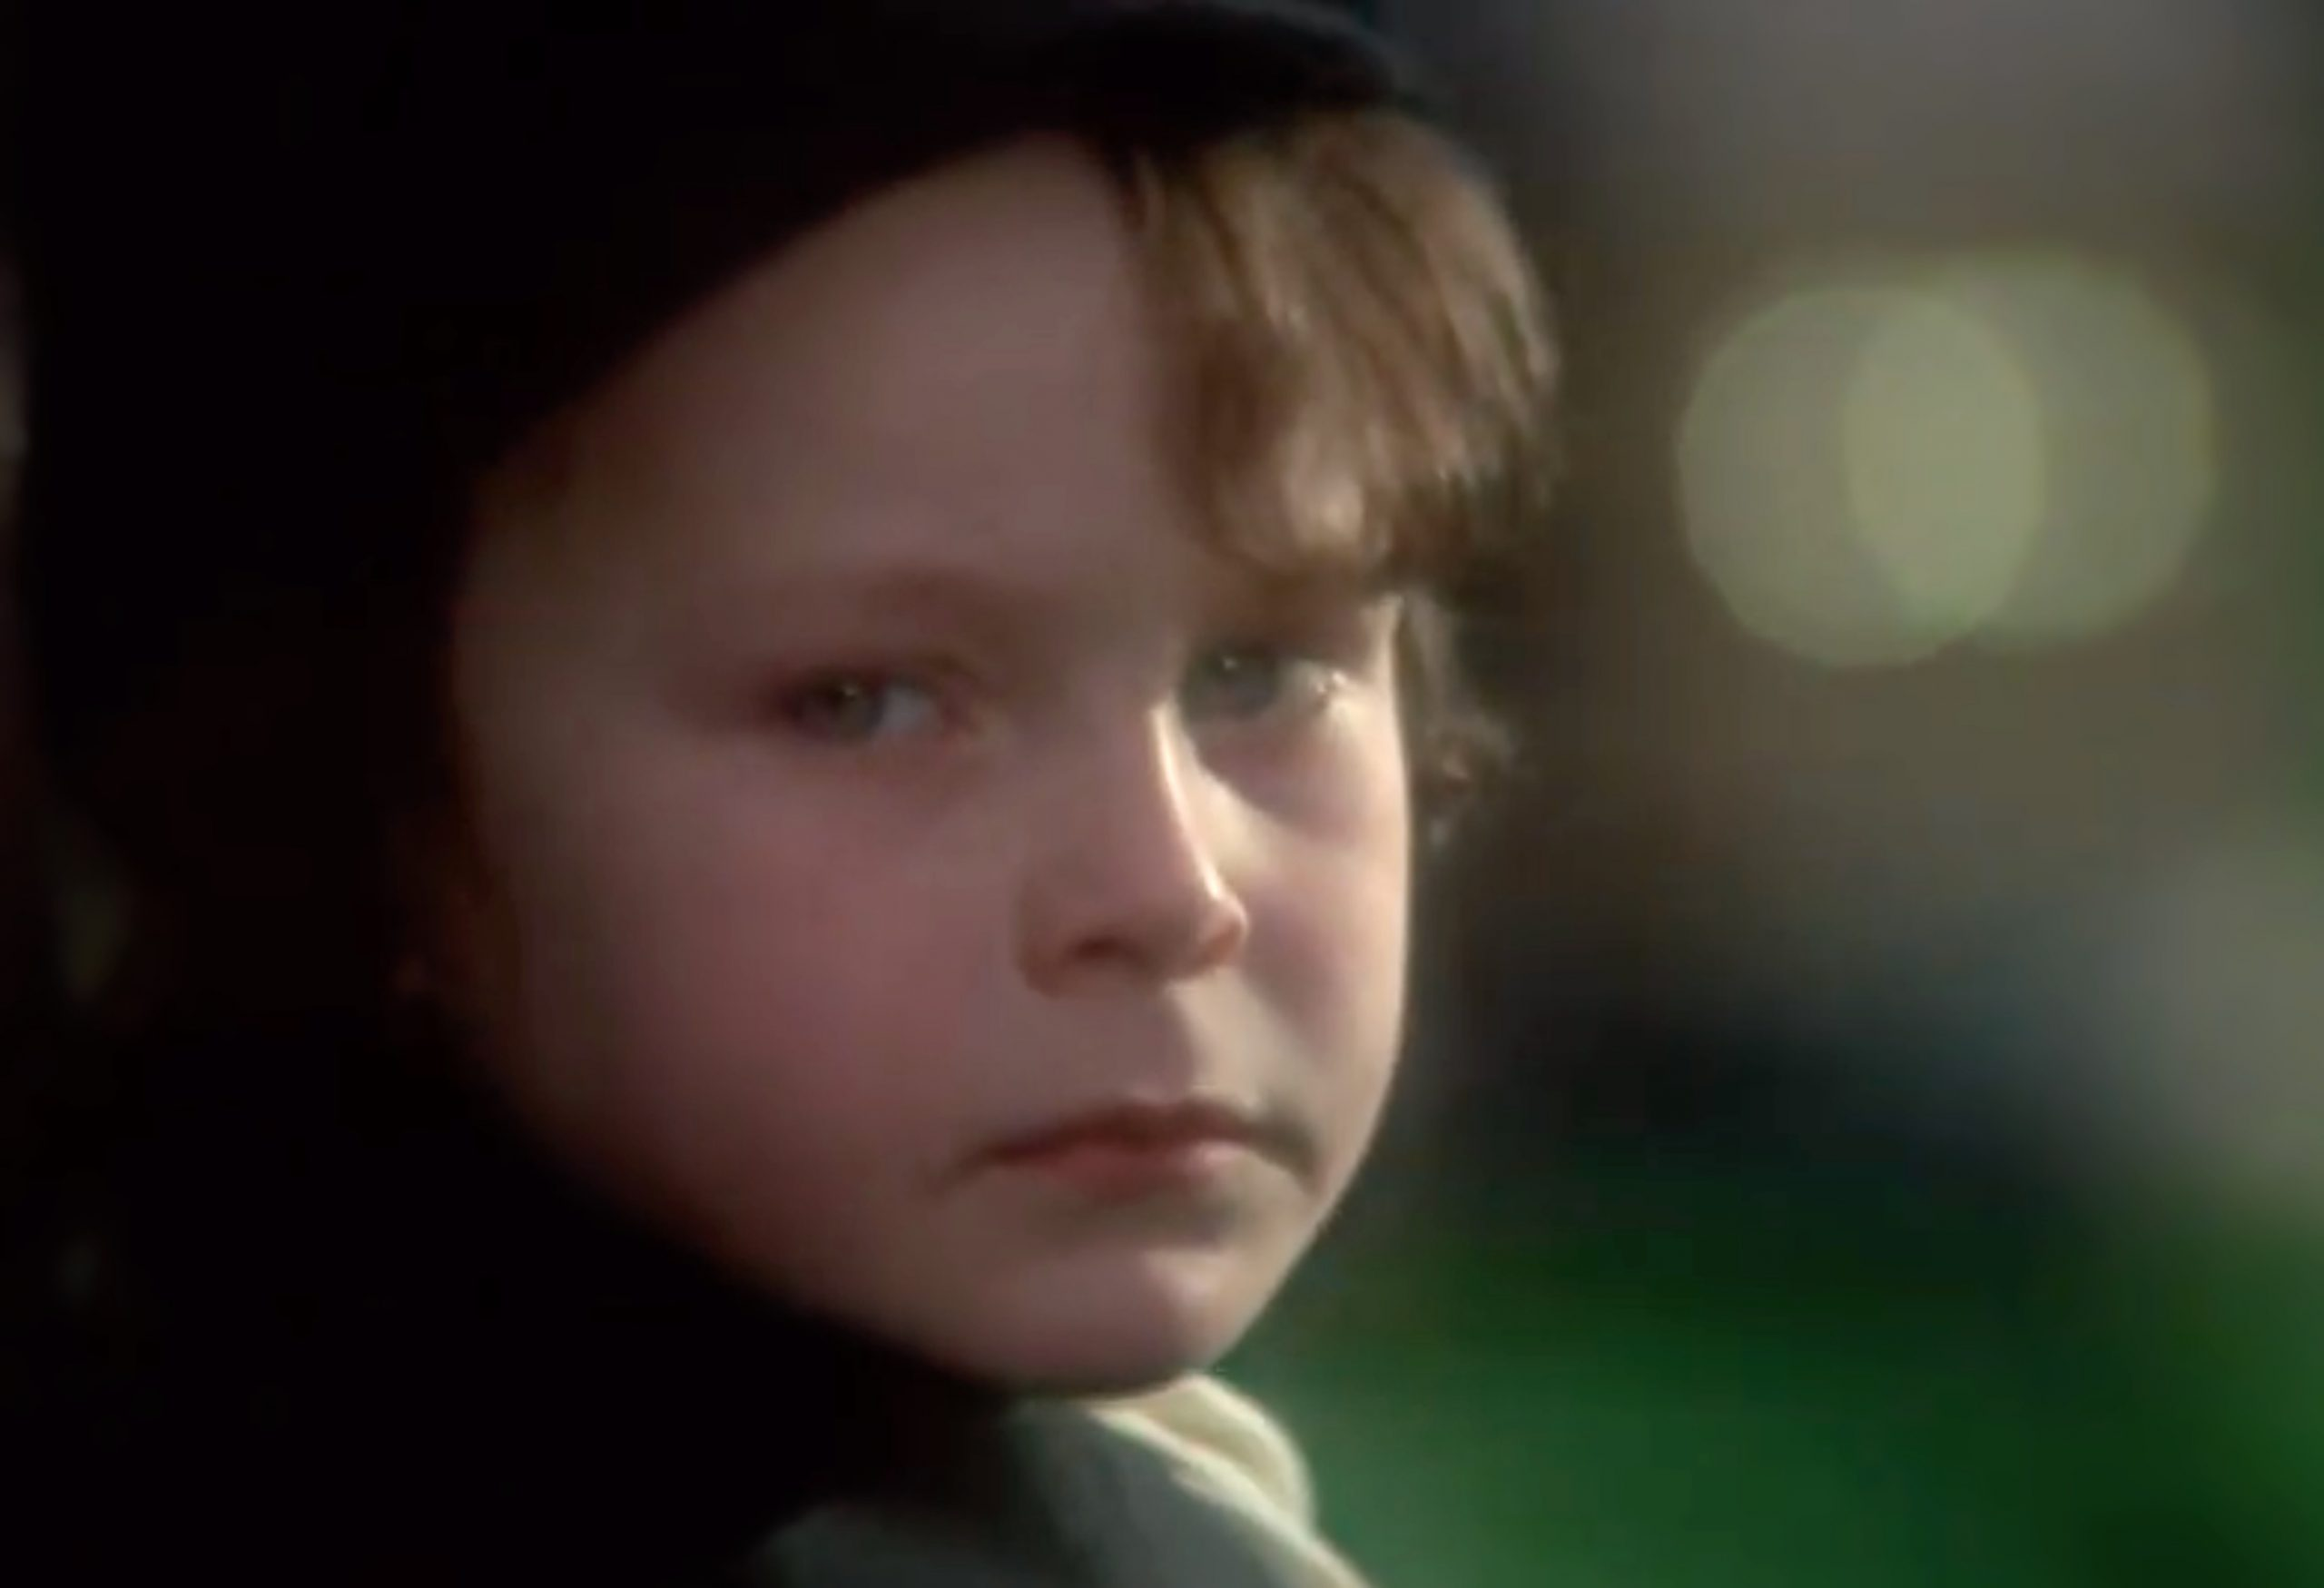 Medical London Lockdown Quiz: Damian from 'The Omen'